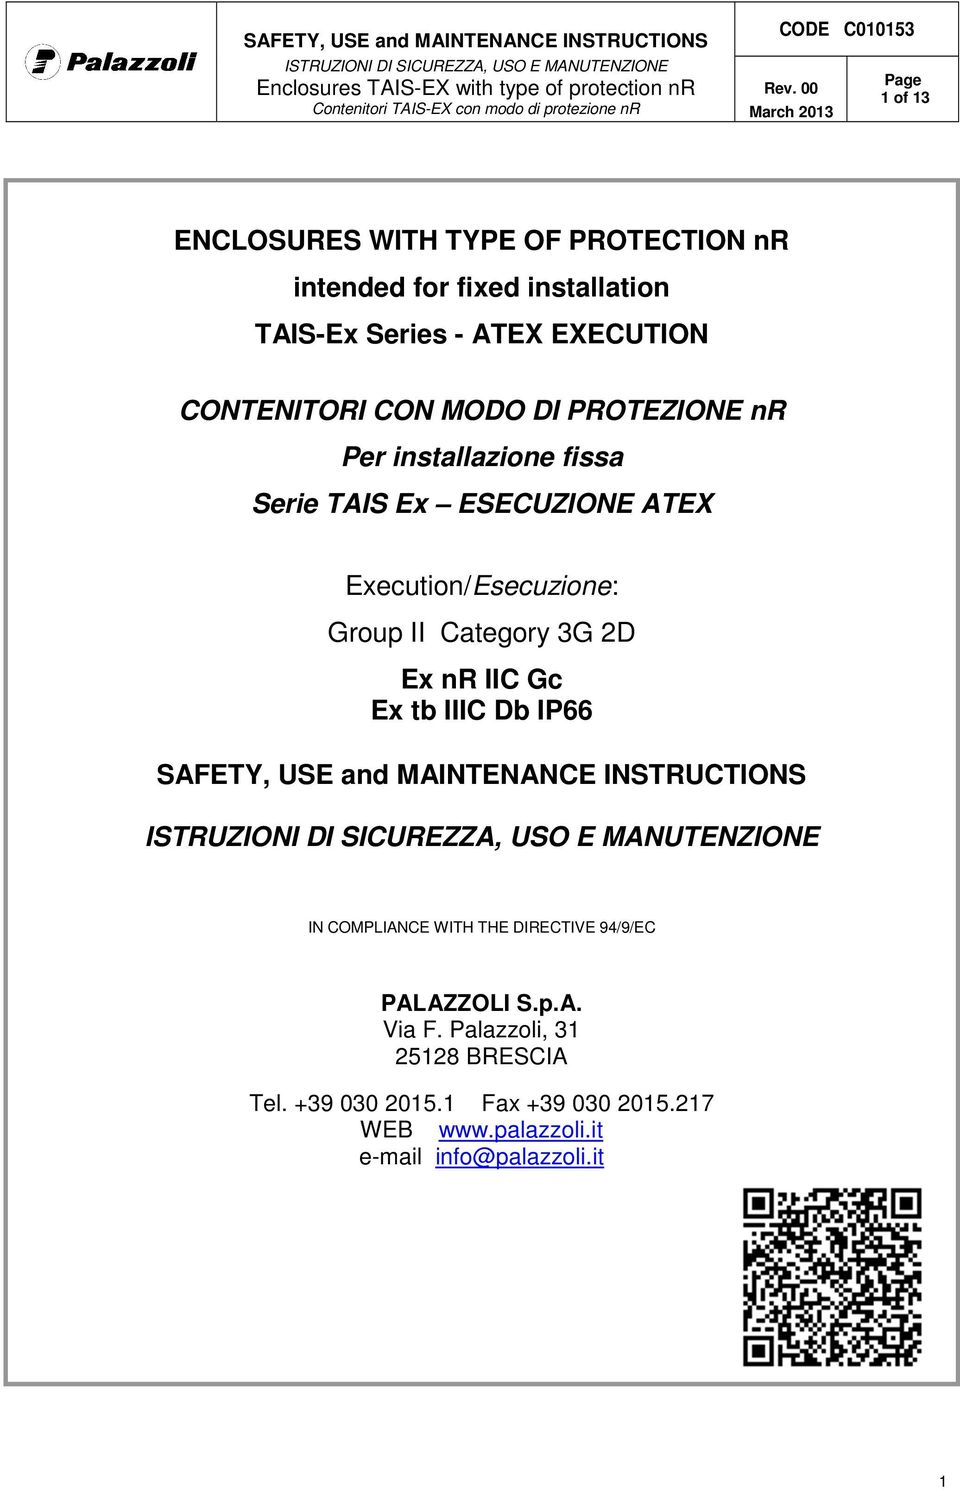 fissa Serie TAIS Ex ESECUZIONE ATEX Execution/Esecuzione: Group II Category 3G 2D Ex nr IIC Gc Ex tb IIIC Db IP66 SAFETY, USE and MAINTENANCE INSTRUCTIONS ISTRUZIONI DI SICUREZZA, USO E